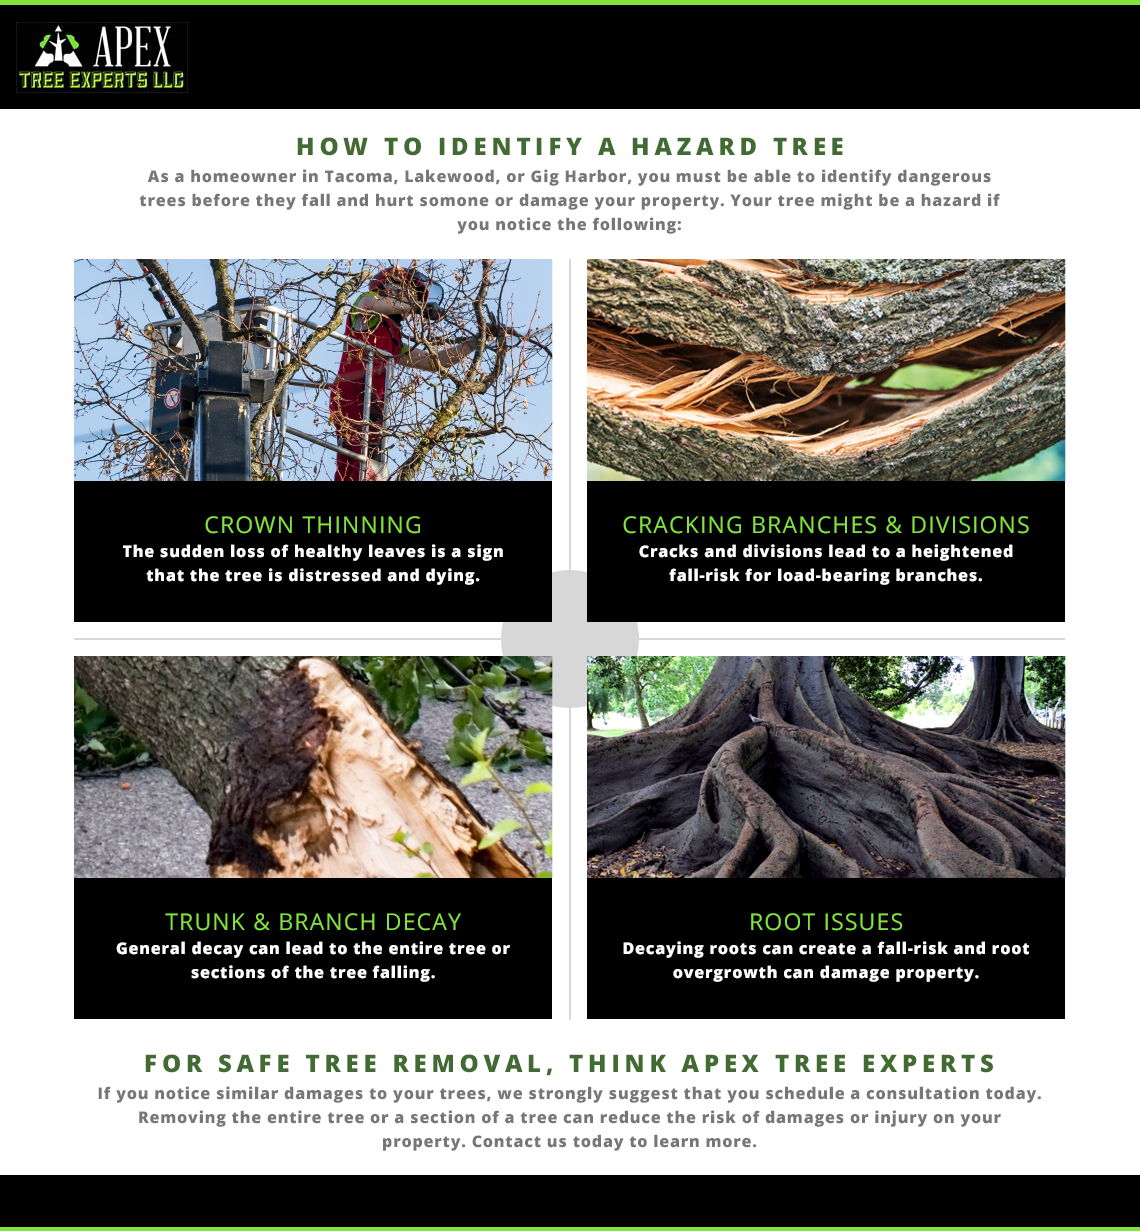 How to identify a hazardous tree.